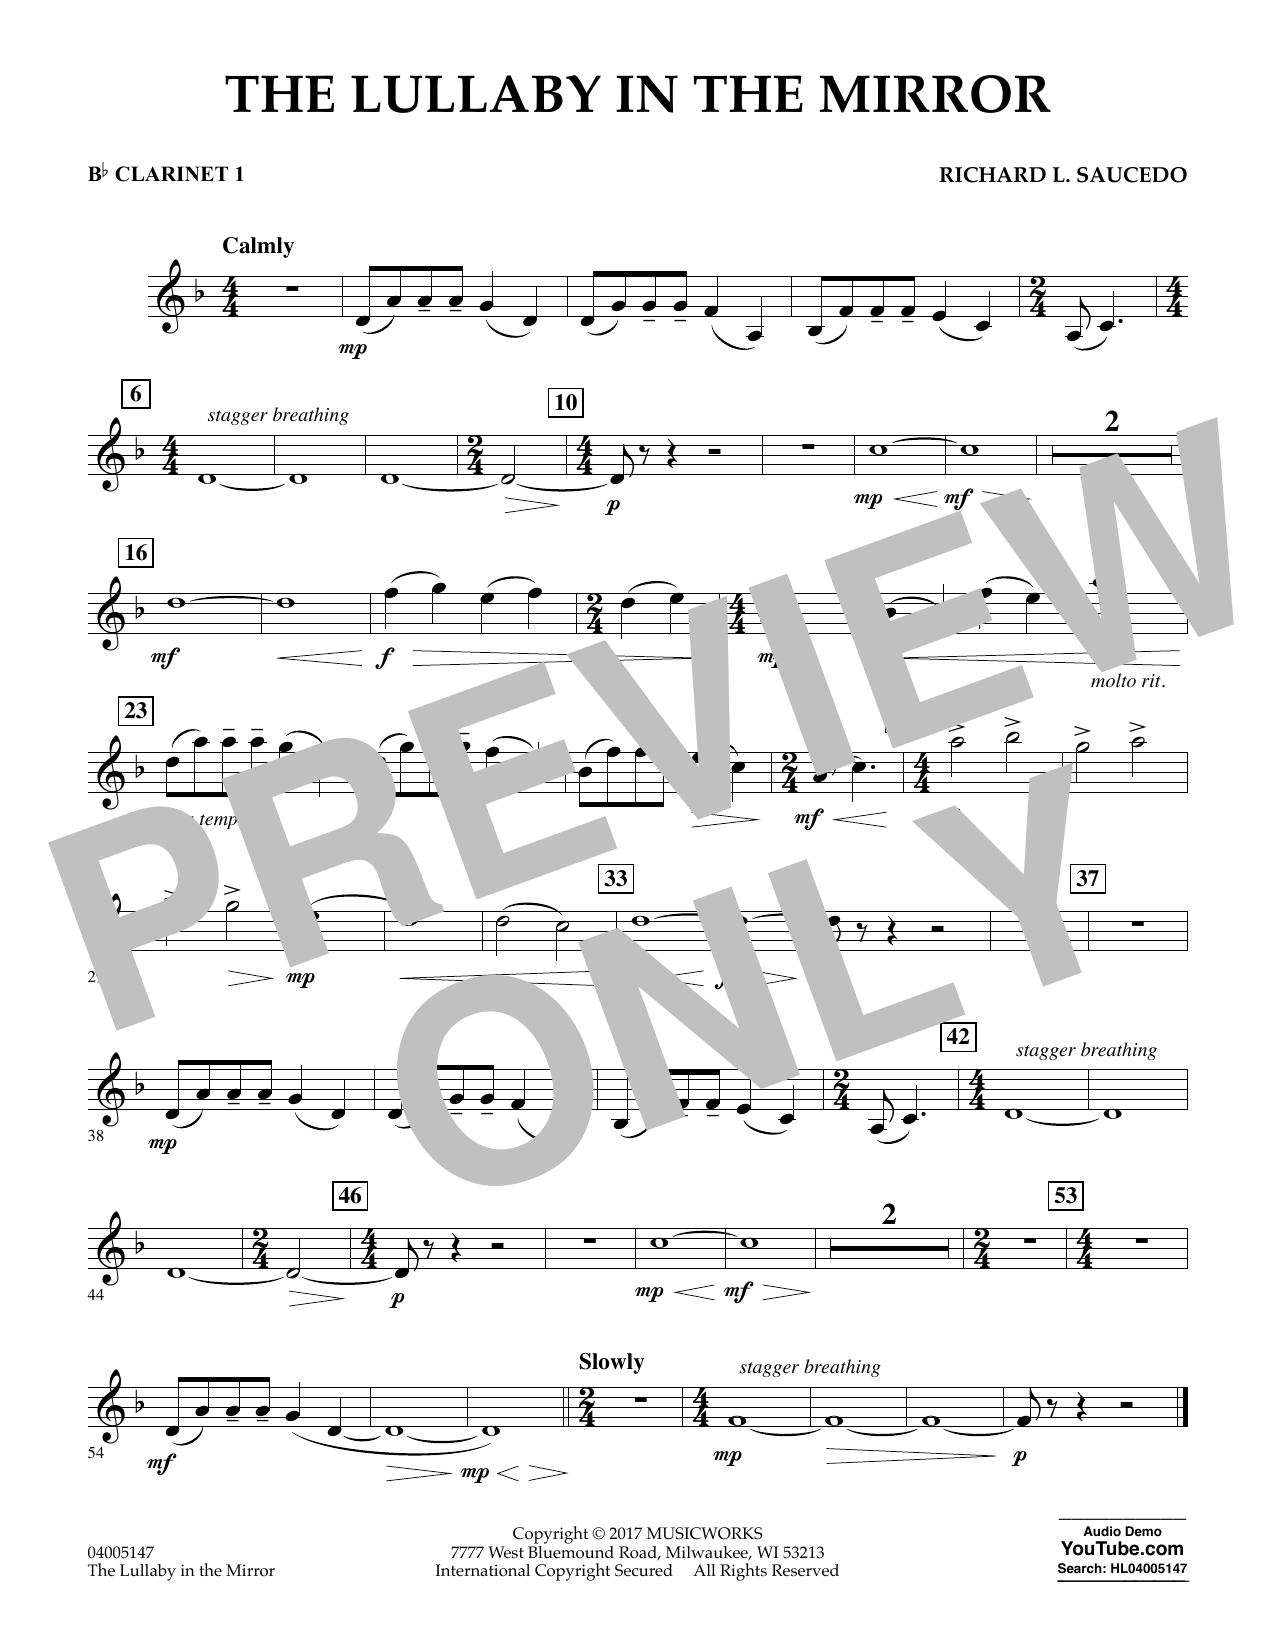 Richard L. Saucedo The Lullaby in the Mirror - Bb Clarinet 1 sheet music notes and chords. Download Printable PDF.